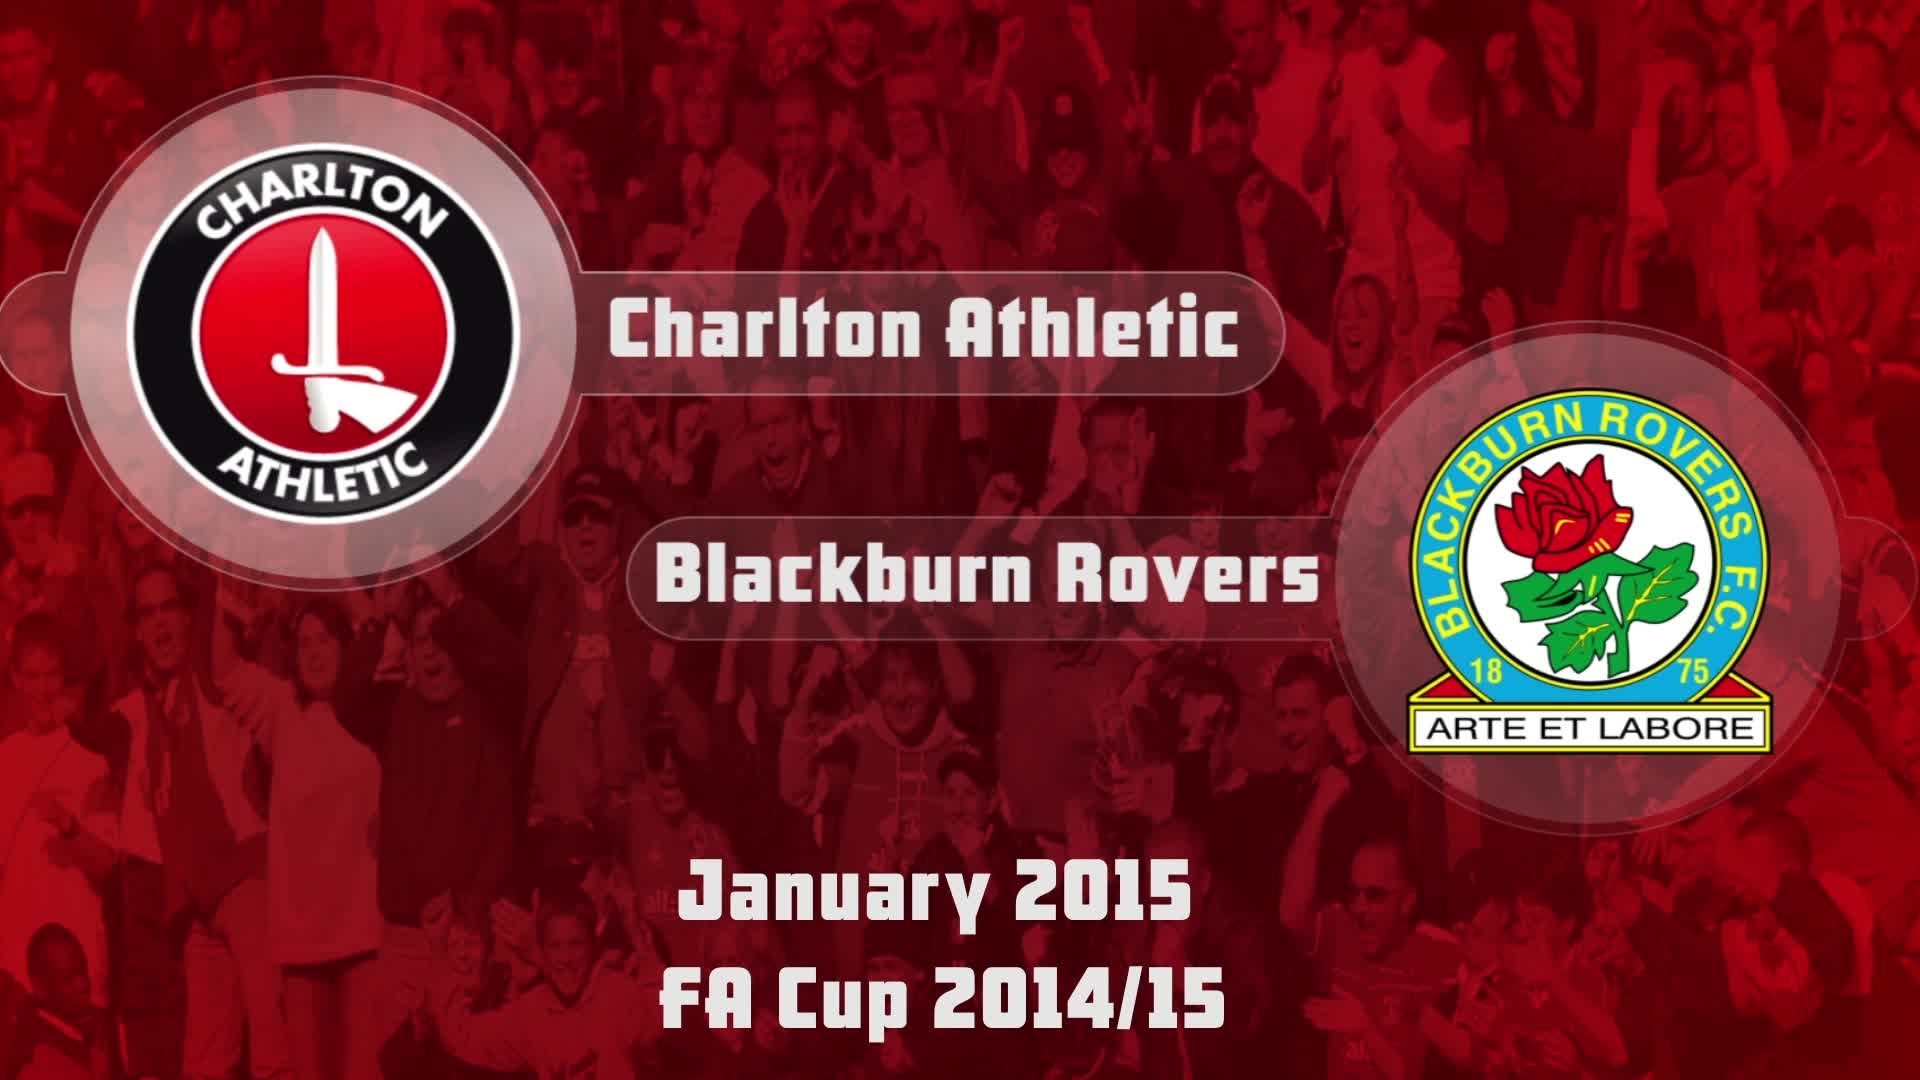 27 HIGHLIGHTS | Charlton 1 Blackburn 2 (FA Cup Jan 2015)